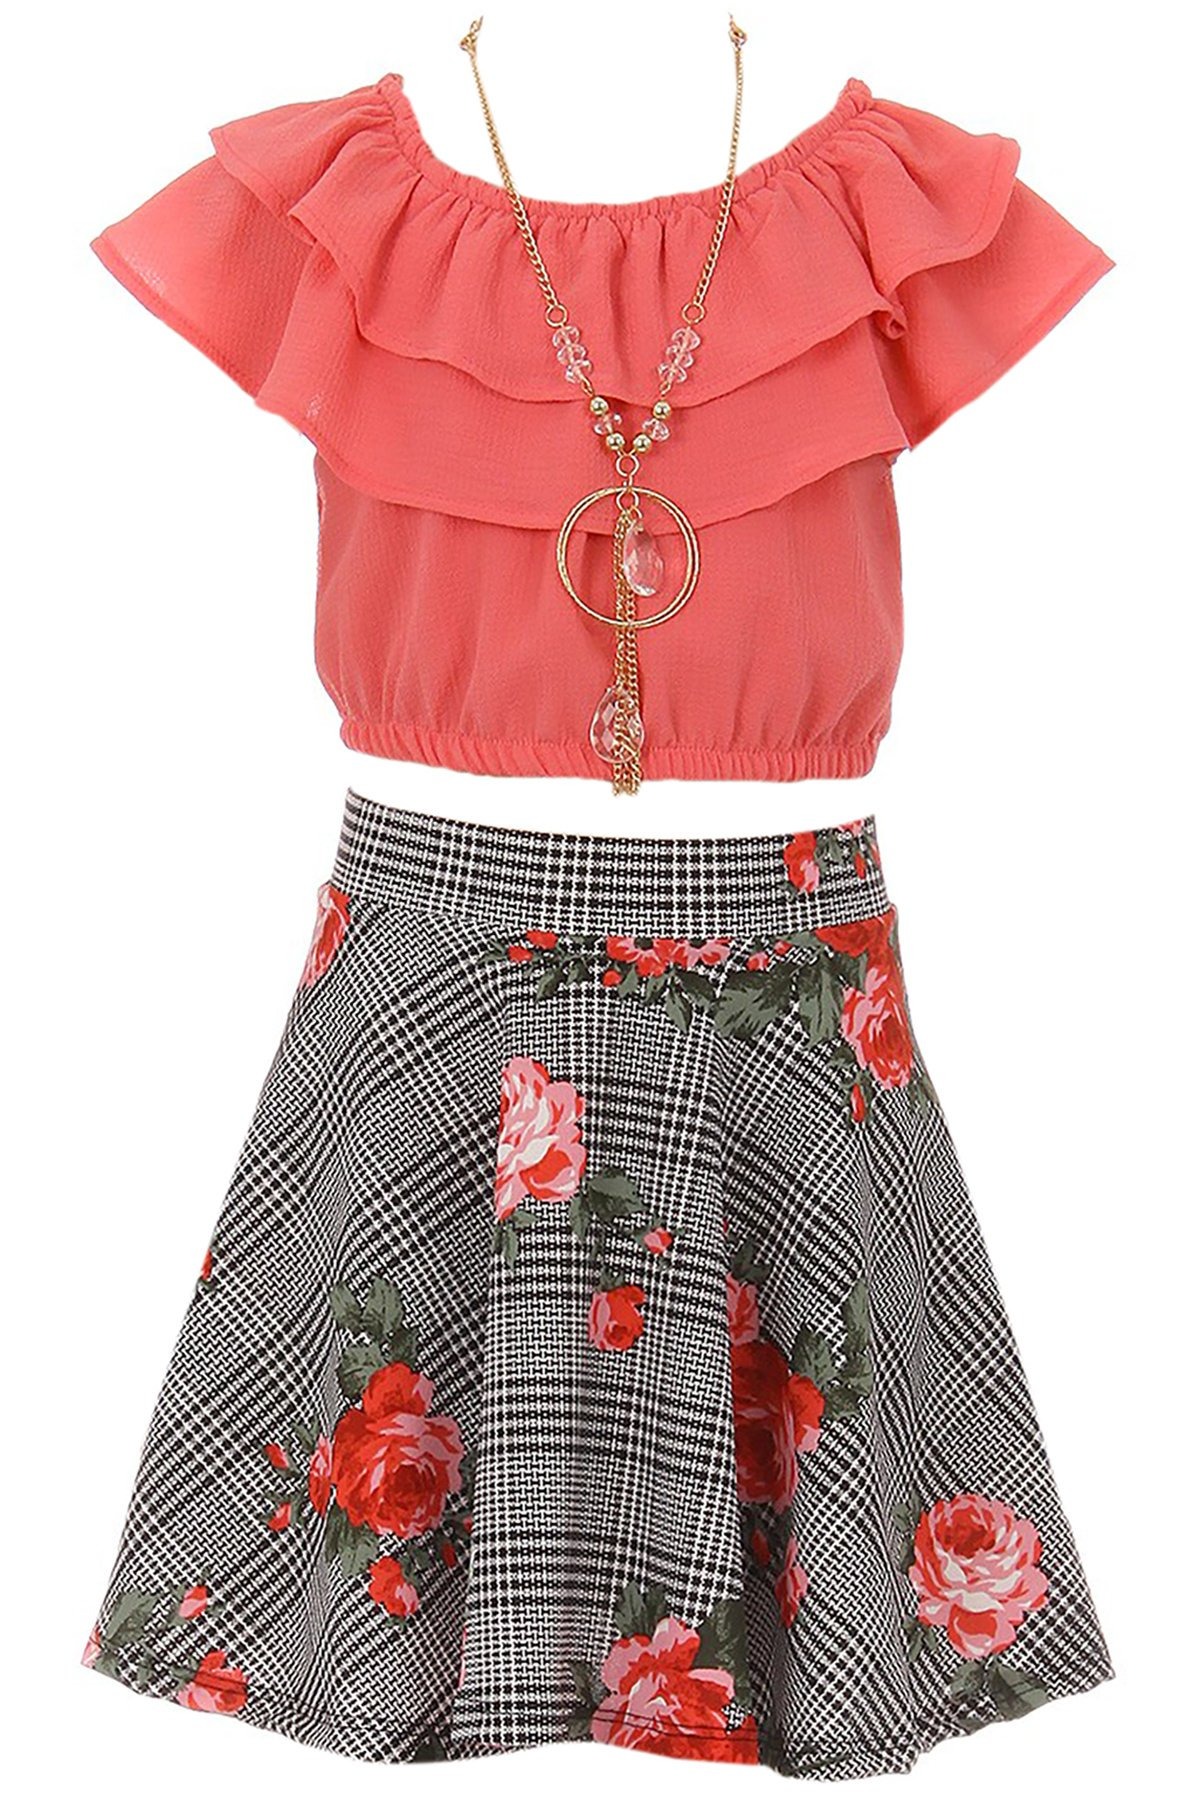 Big Girl 3 Pieces Girls Ruffle Top Flower Skirt Necklace Party Clothing Set Coral 10 JKS 2130S